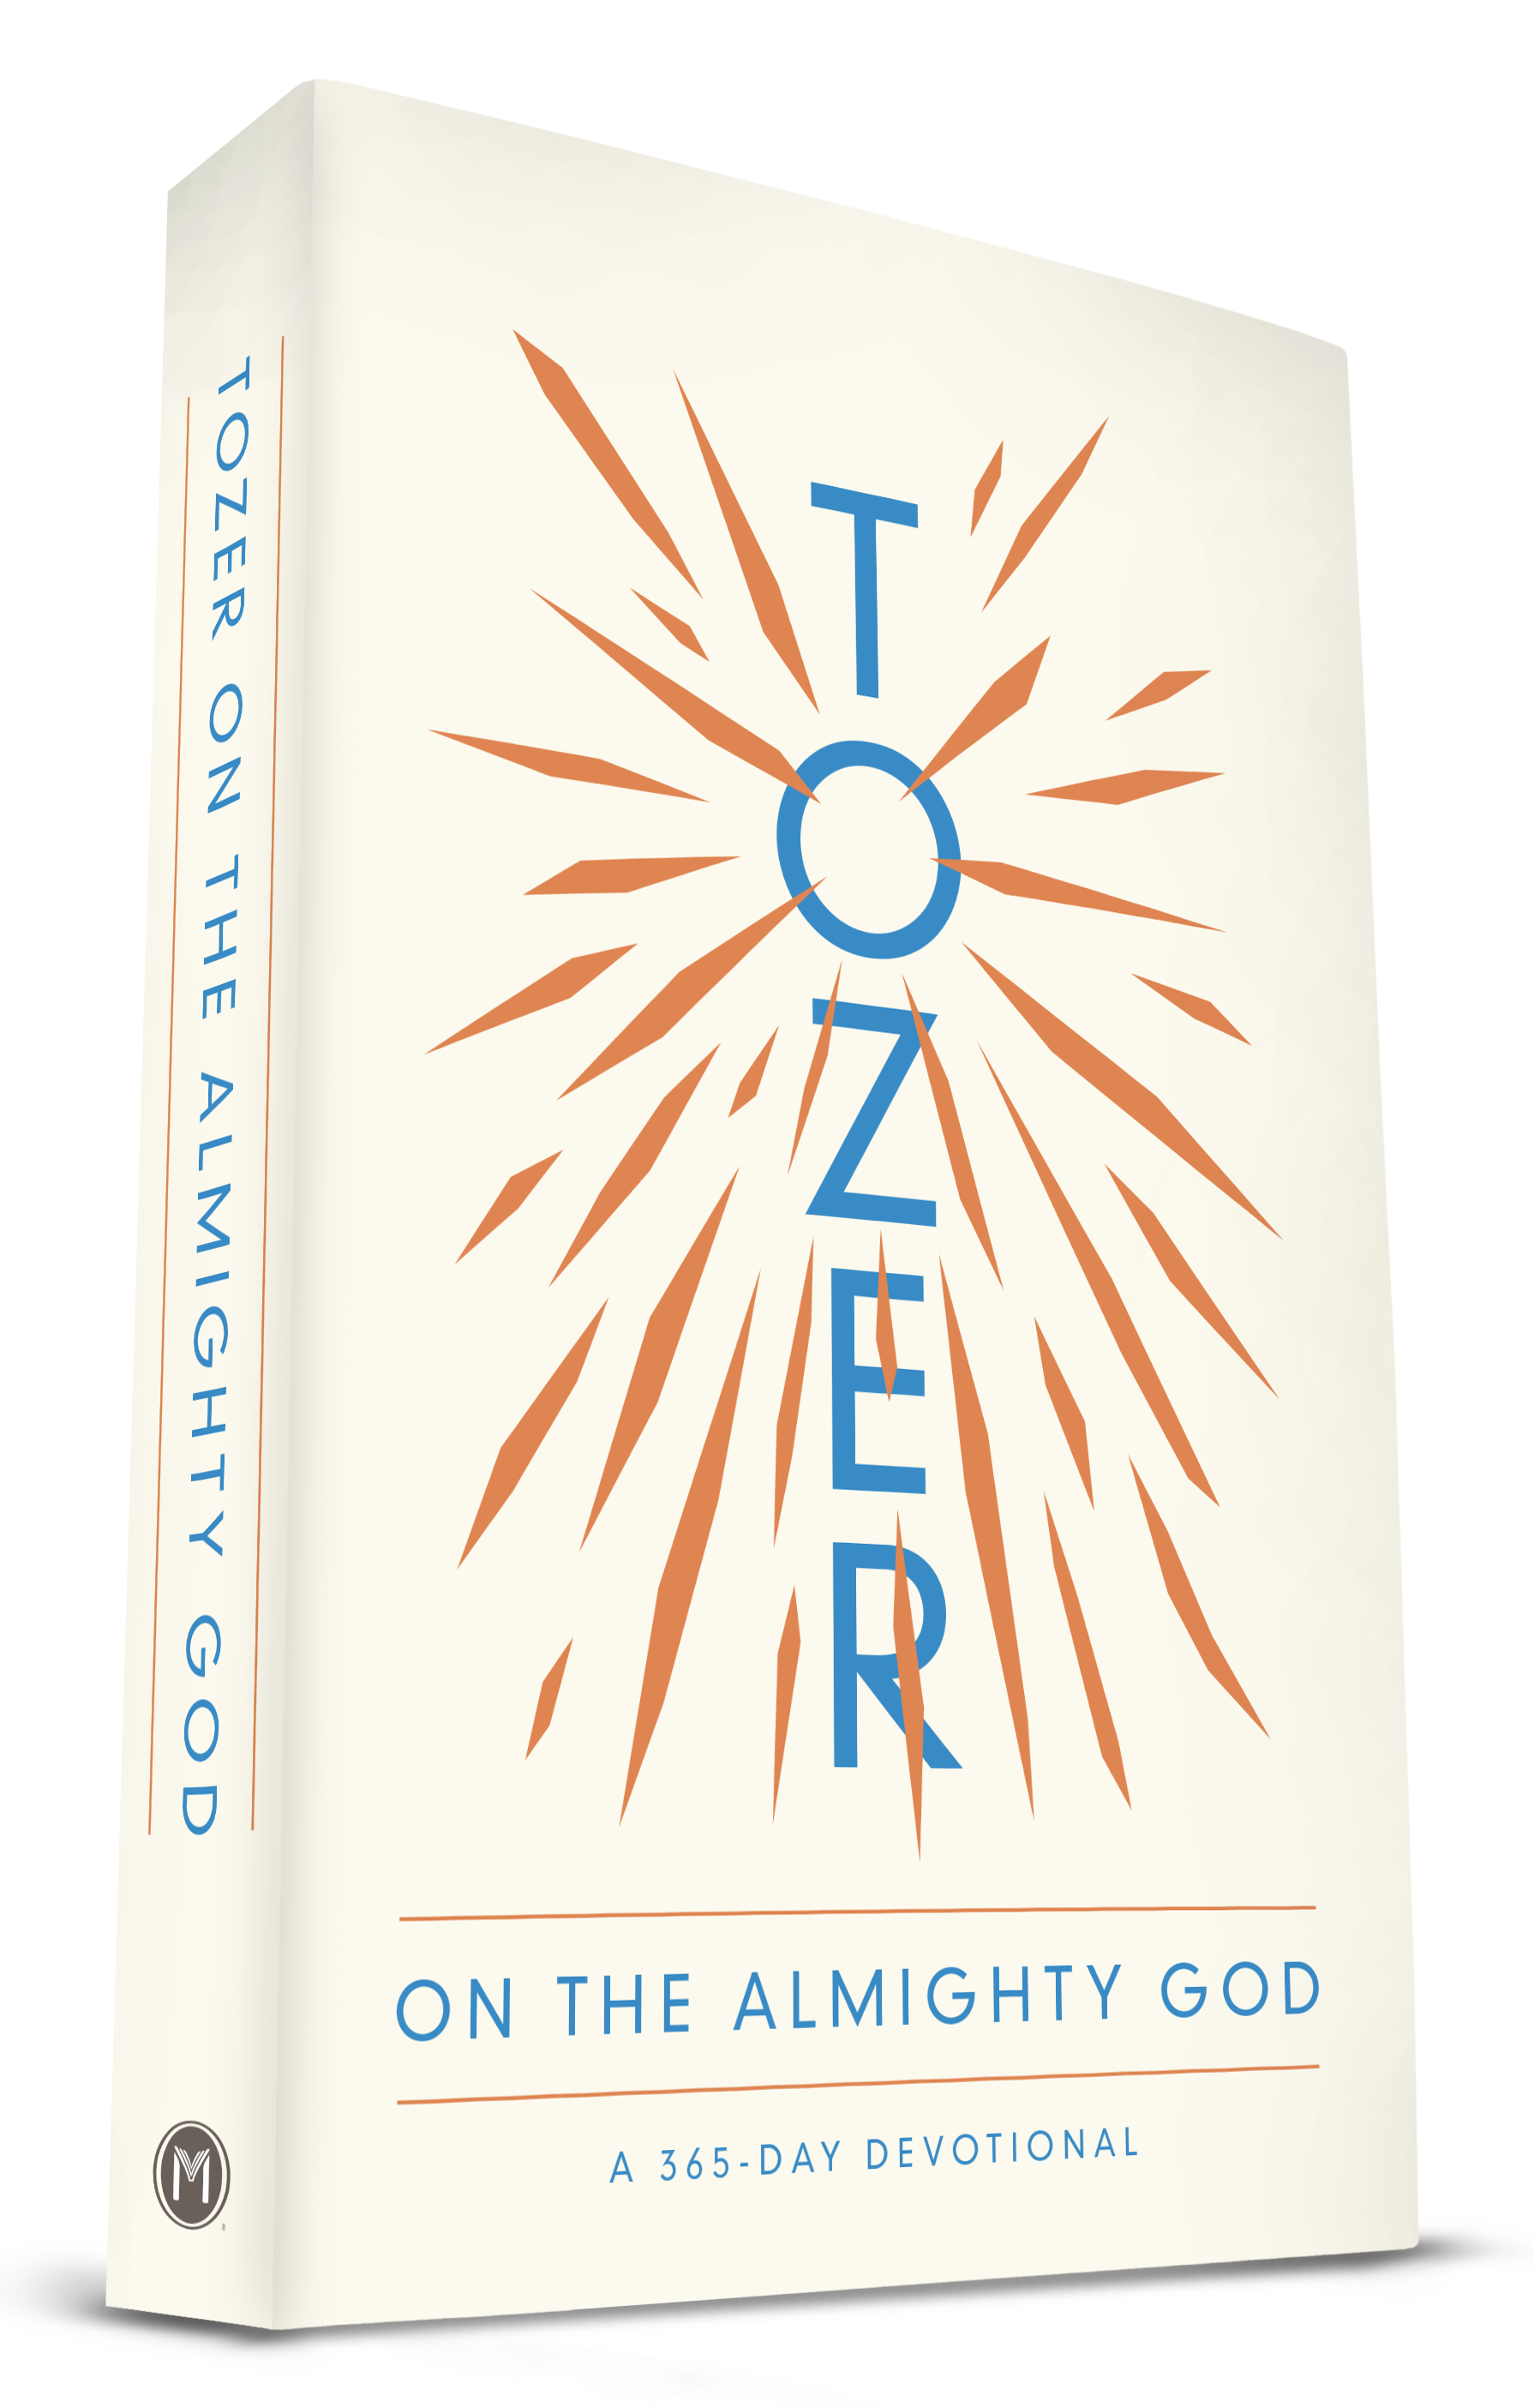 TOZER ON THE ALMIGHTY GOD: A 365-DAY DEVOTIONAL